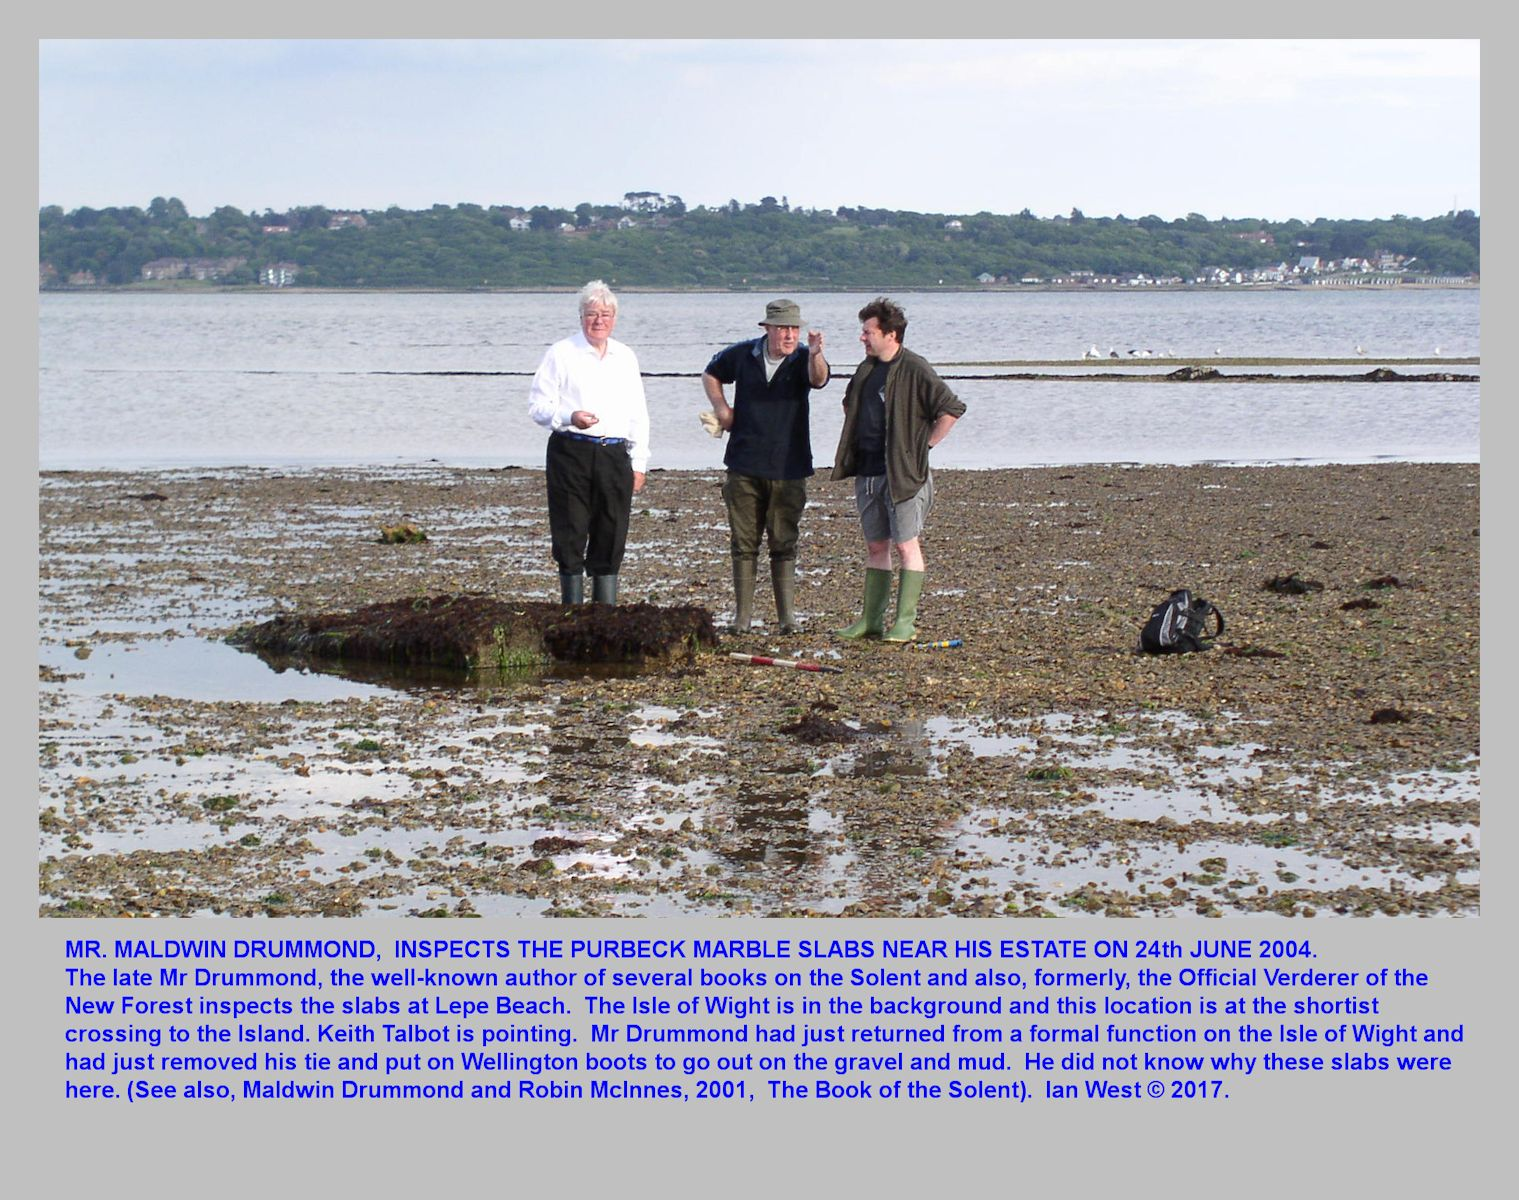 The late Mr Maldwin Drummond, the author, landowner and former Official Verderer of the New Forest, visited the unusual blocks of Purbeck Marble at Lepe Beach, Hampshire in 20014